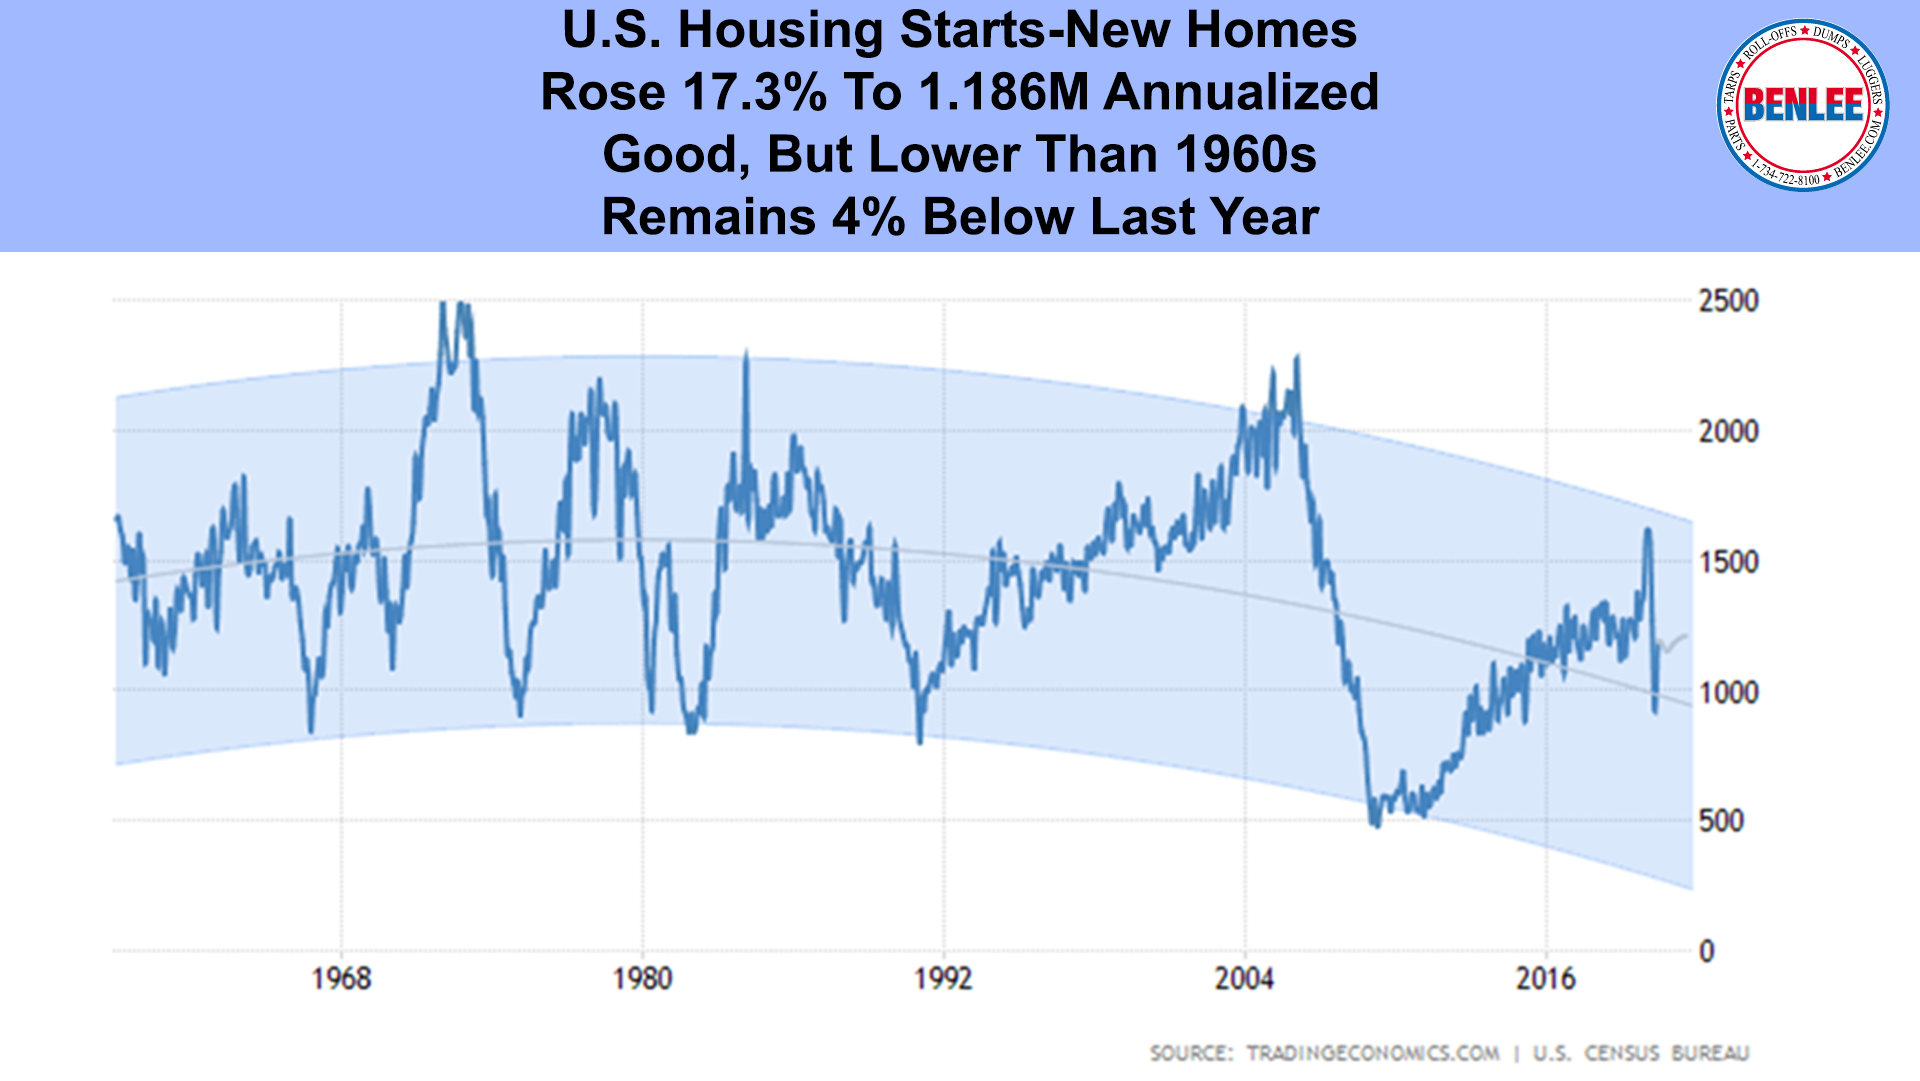 U.S. Housing Starts-New Homes